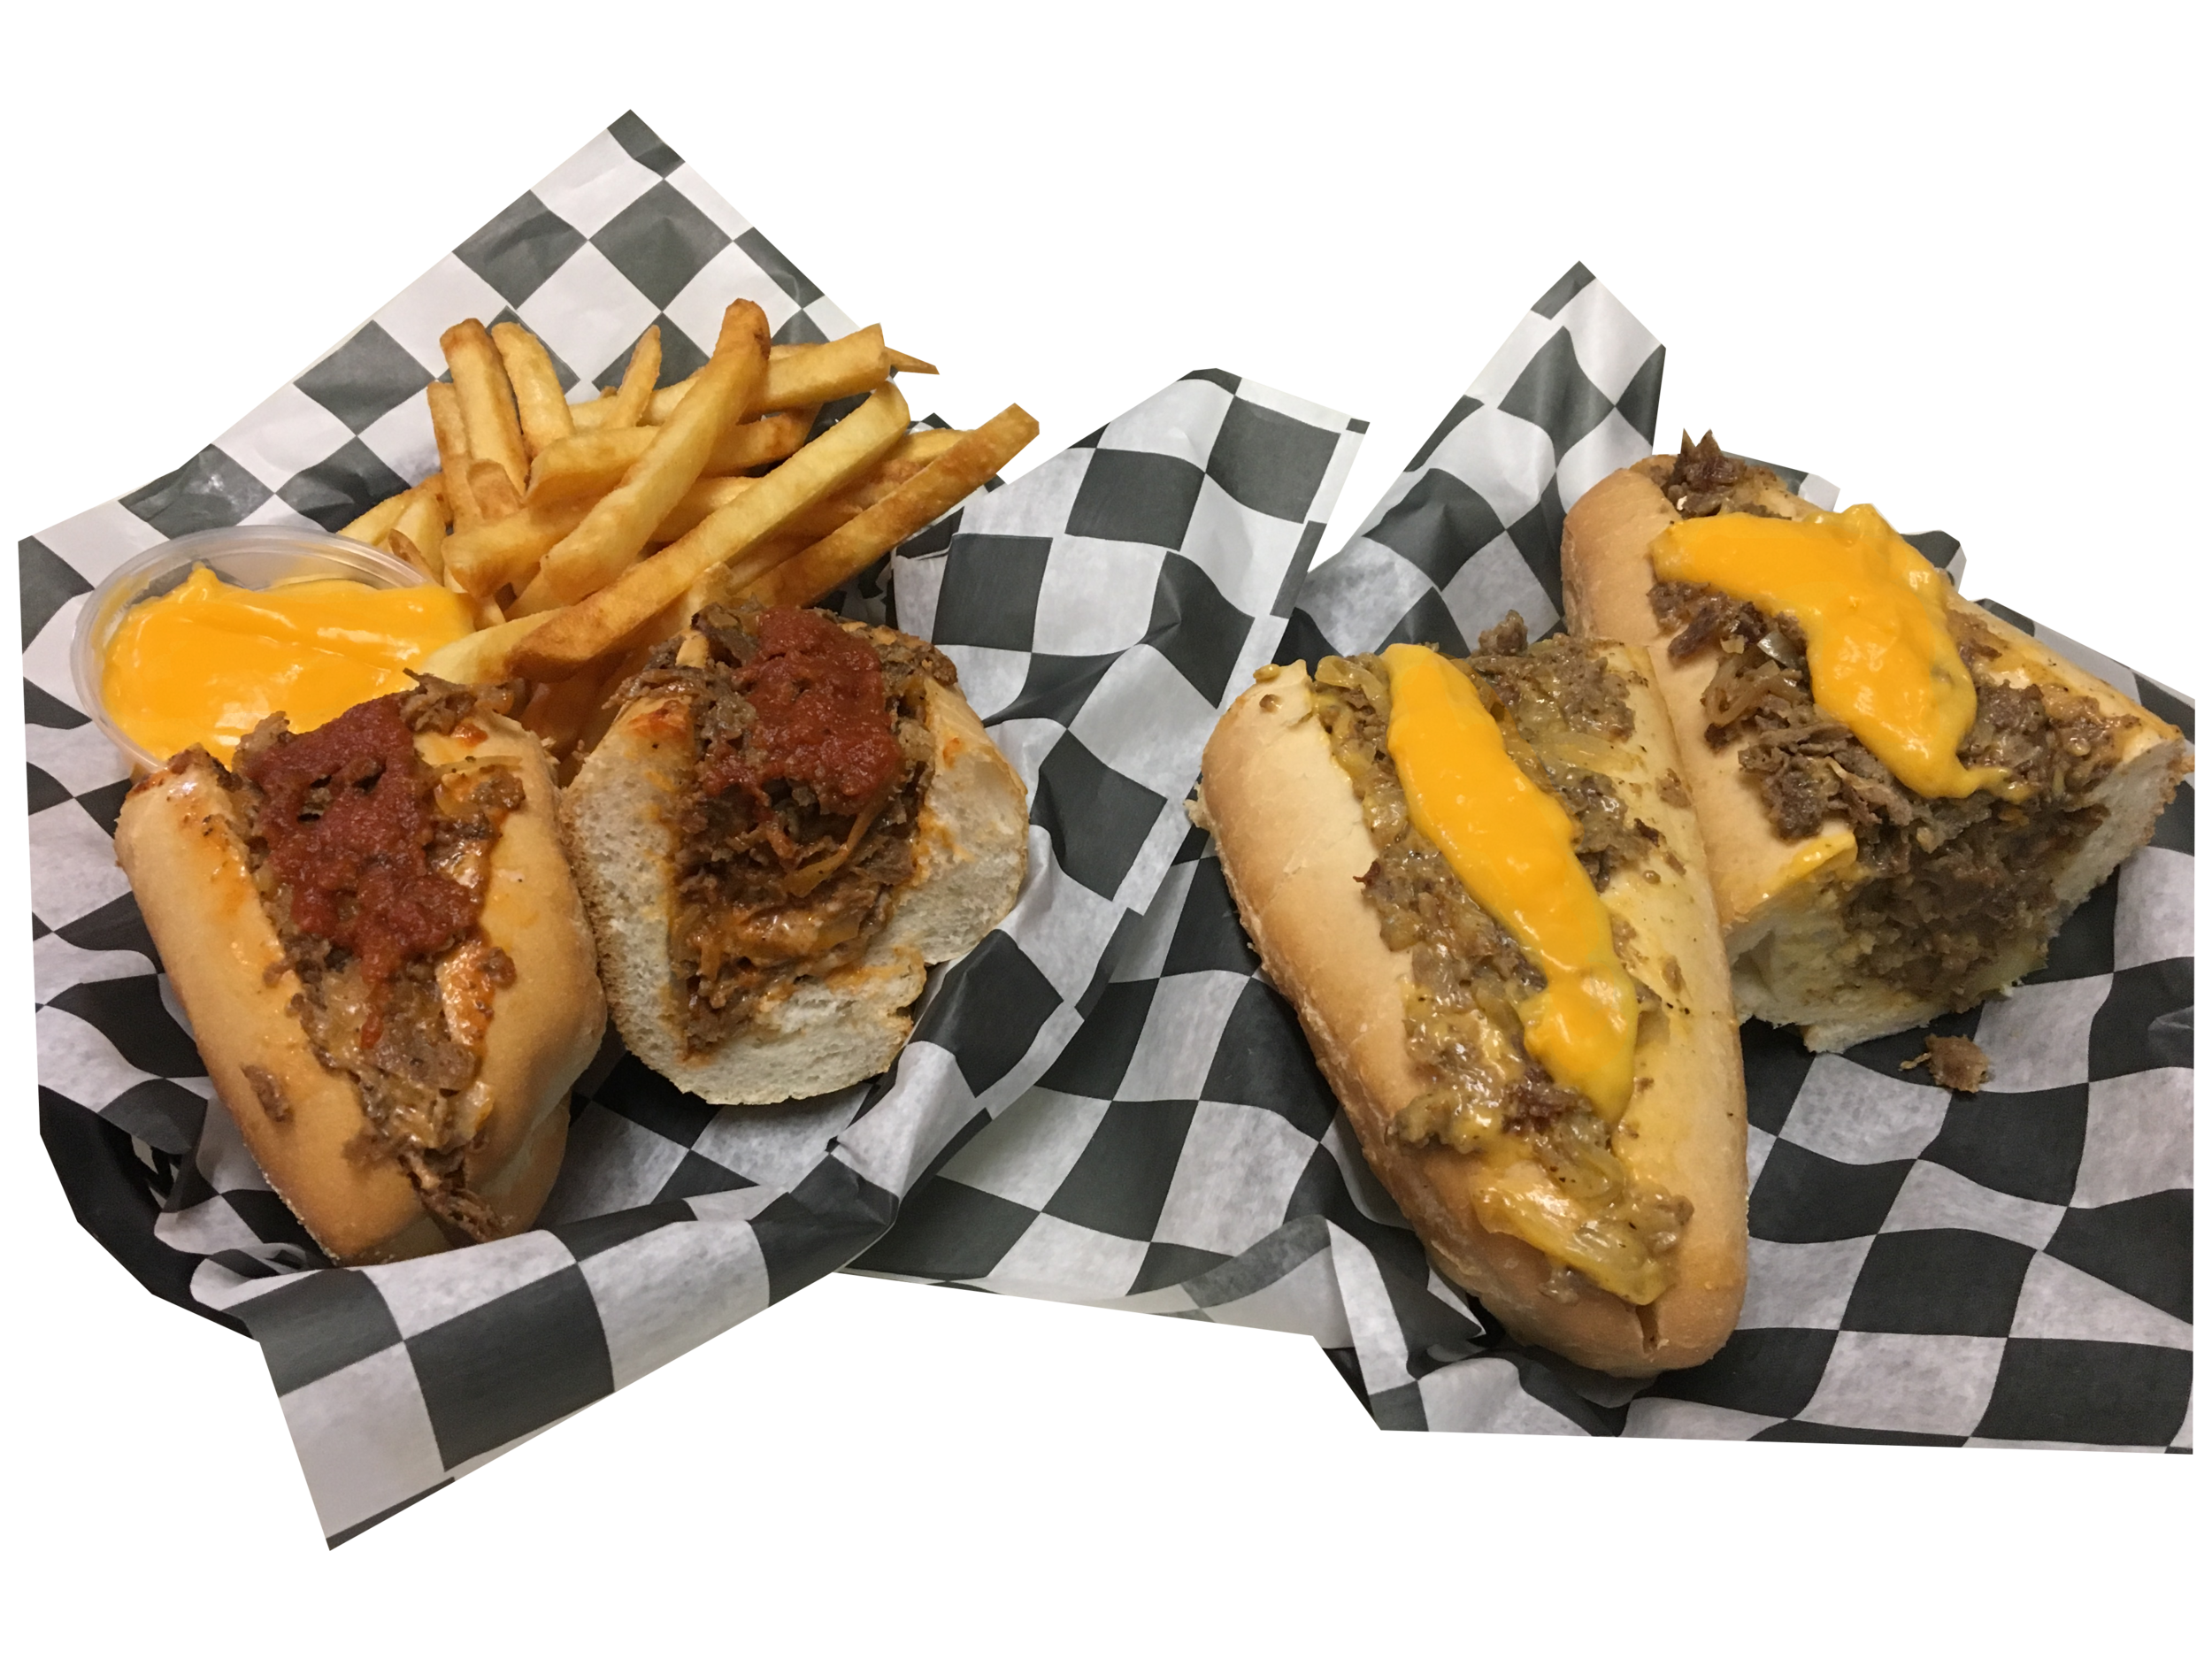 Regular Cheese Steak with Cheese Fries and Steak and Whiz